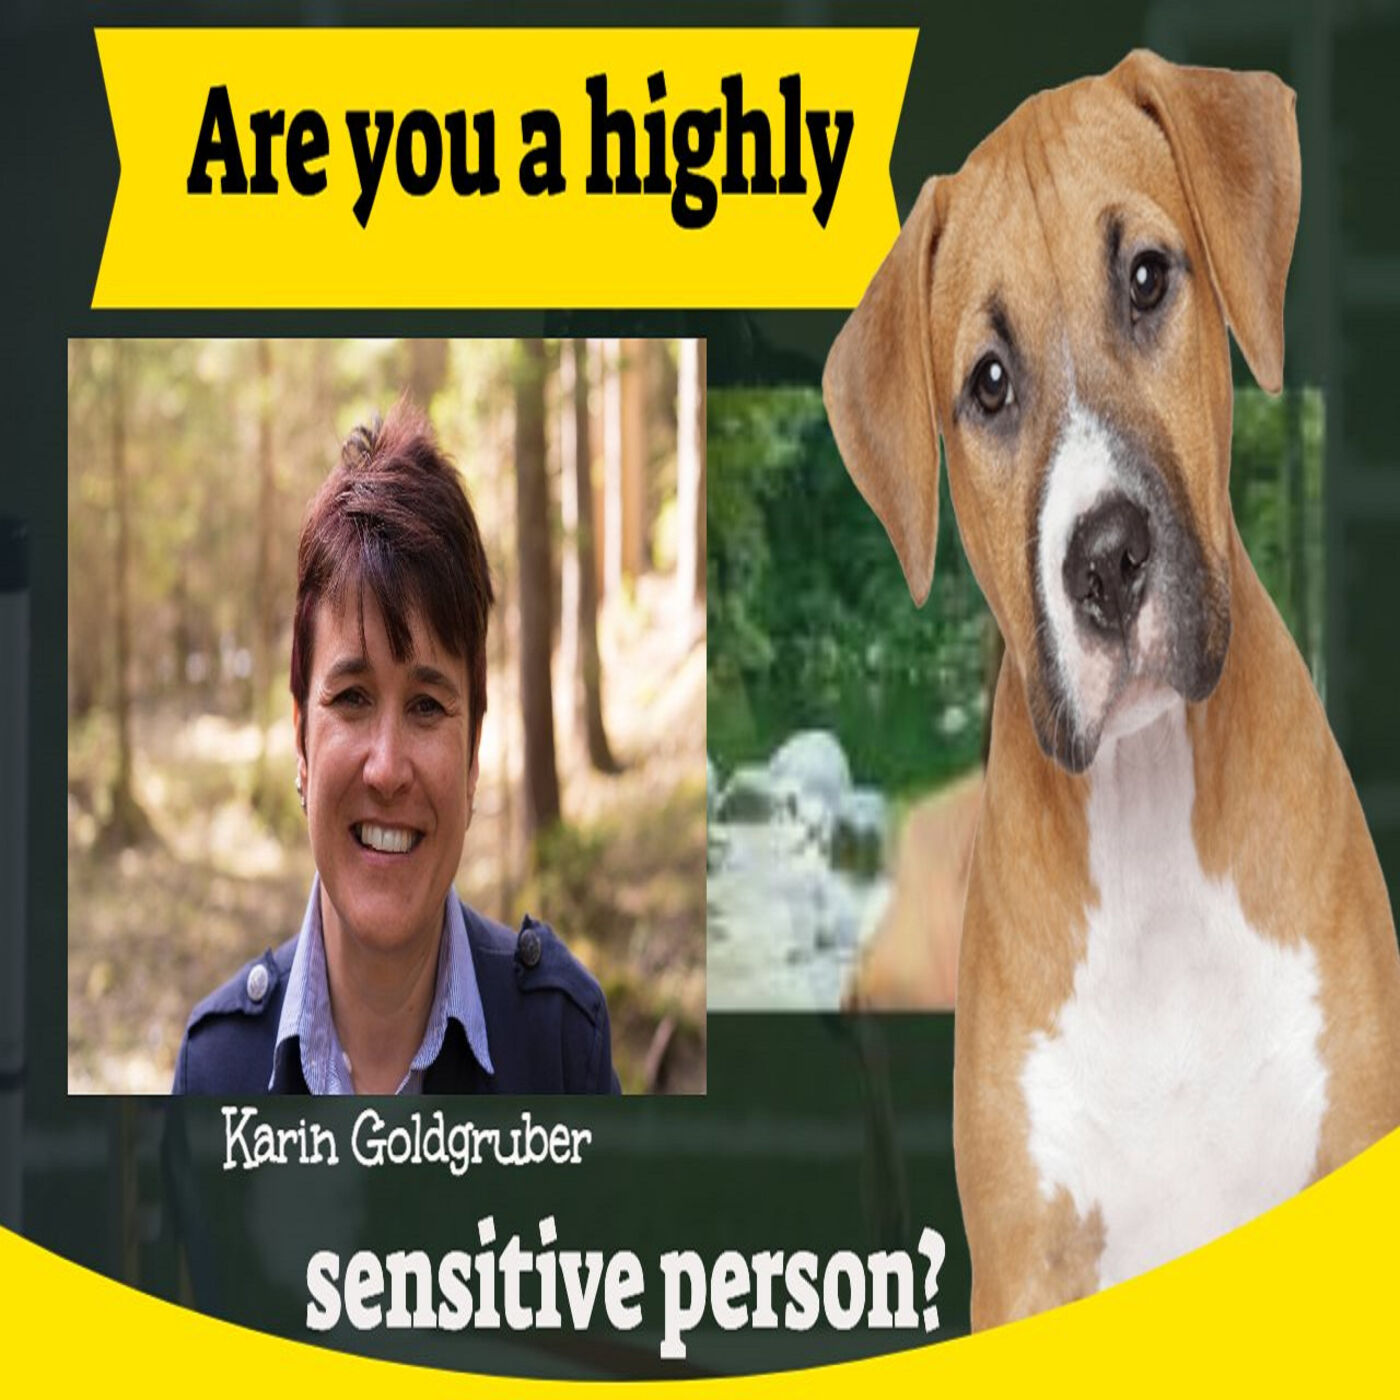 Are you a highly sensitive person? Do you feel bombarded with anxiety during #COVID19?